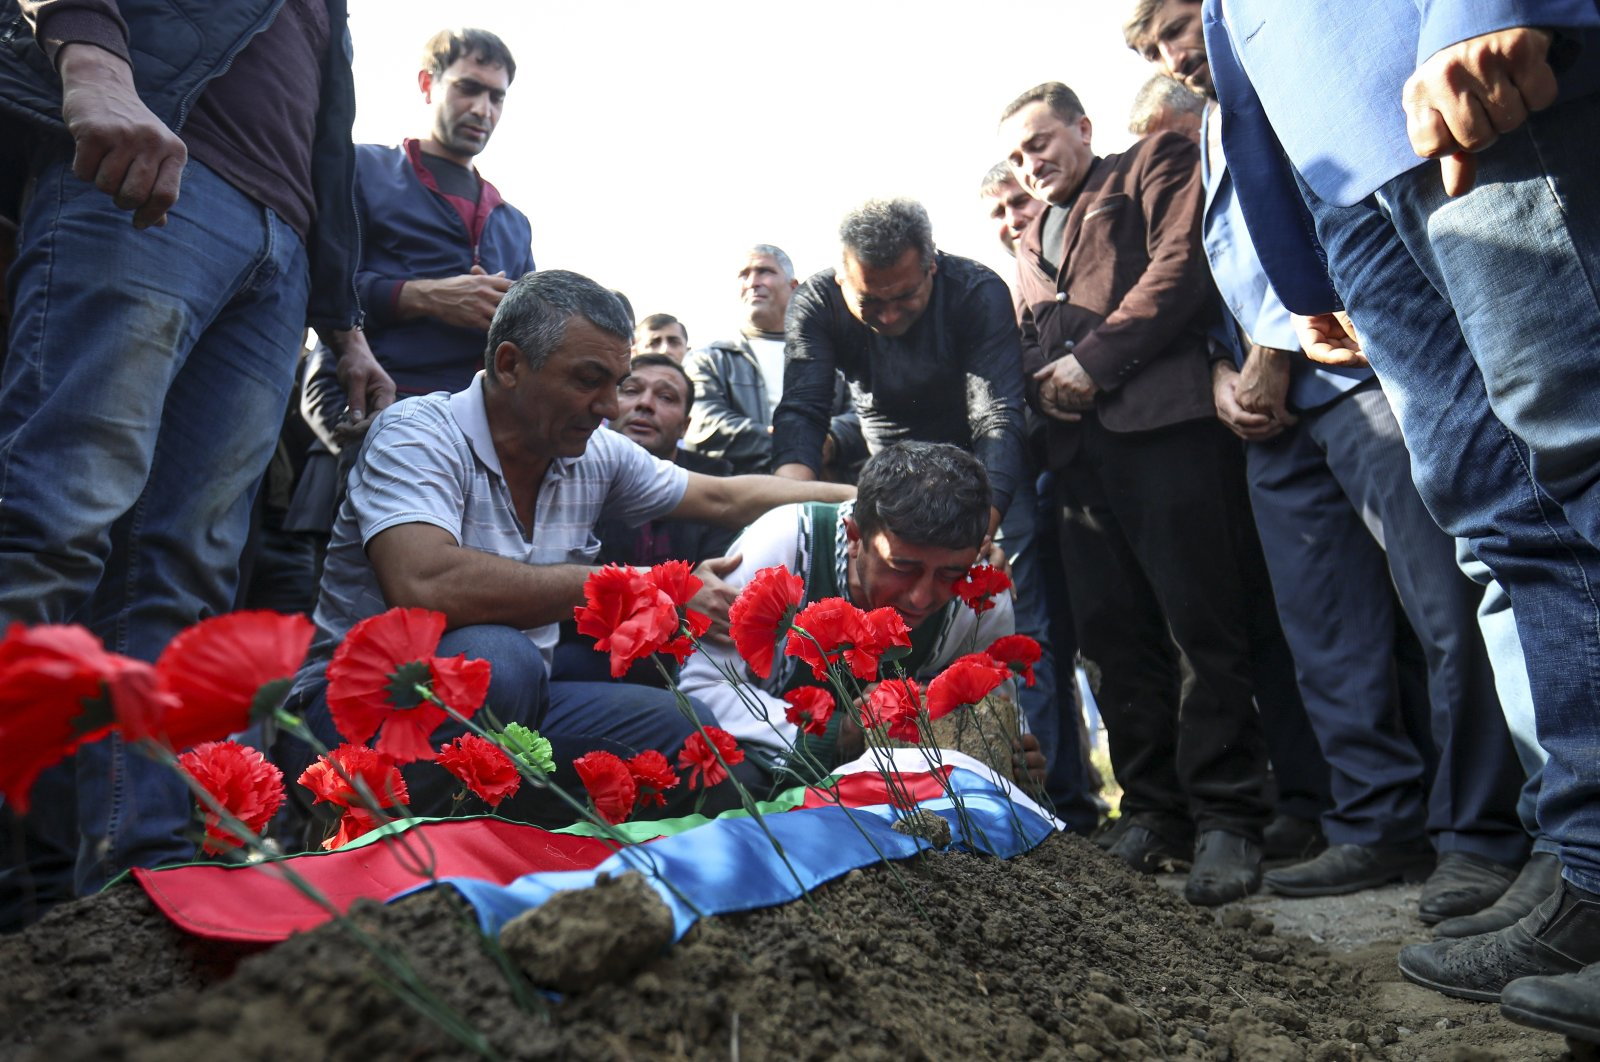 The father of 7-year-old Aysu Isgandarova, who died during shelling conducted by Armenian forces, mourns during a funeral in Garayusifli, Azerbaijan, Oct. 28, 2020. (AP Photo)